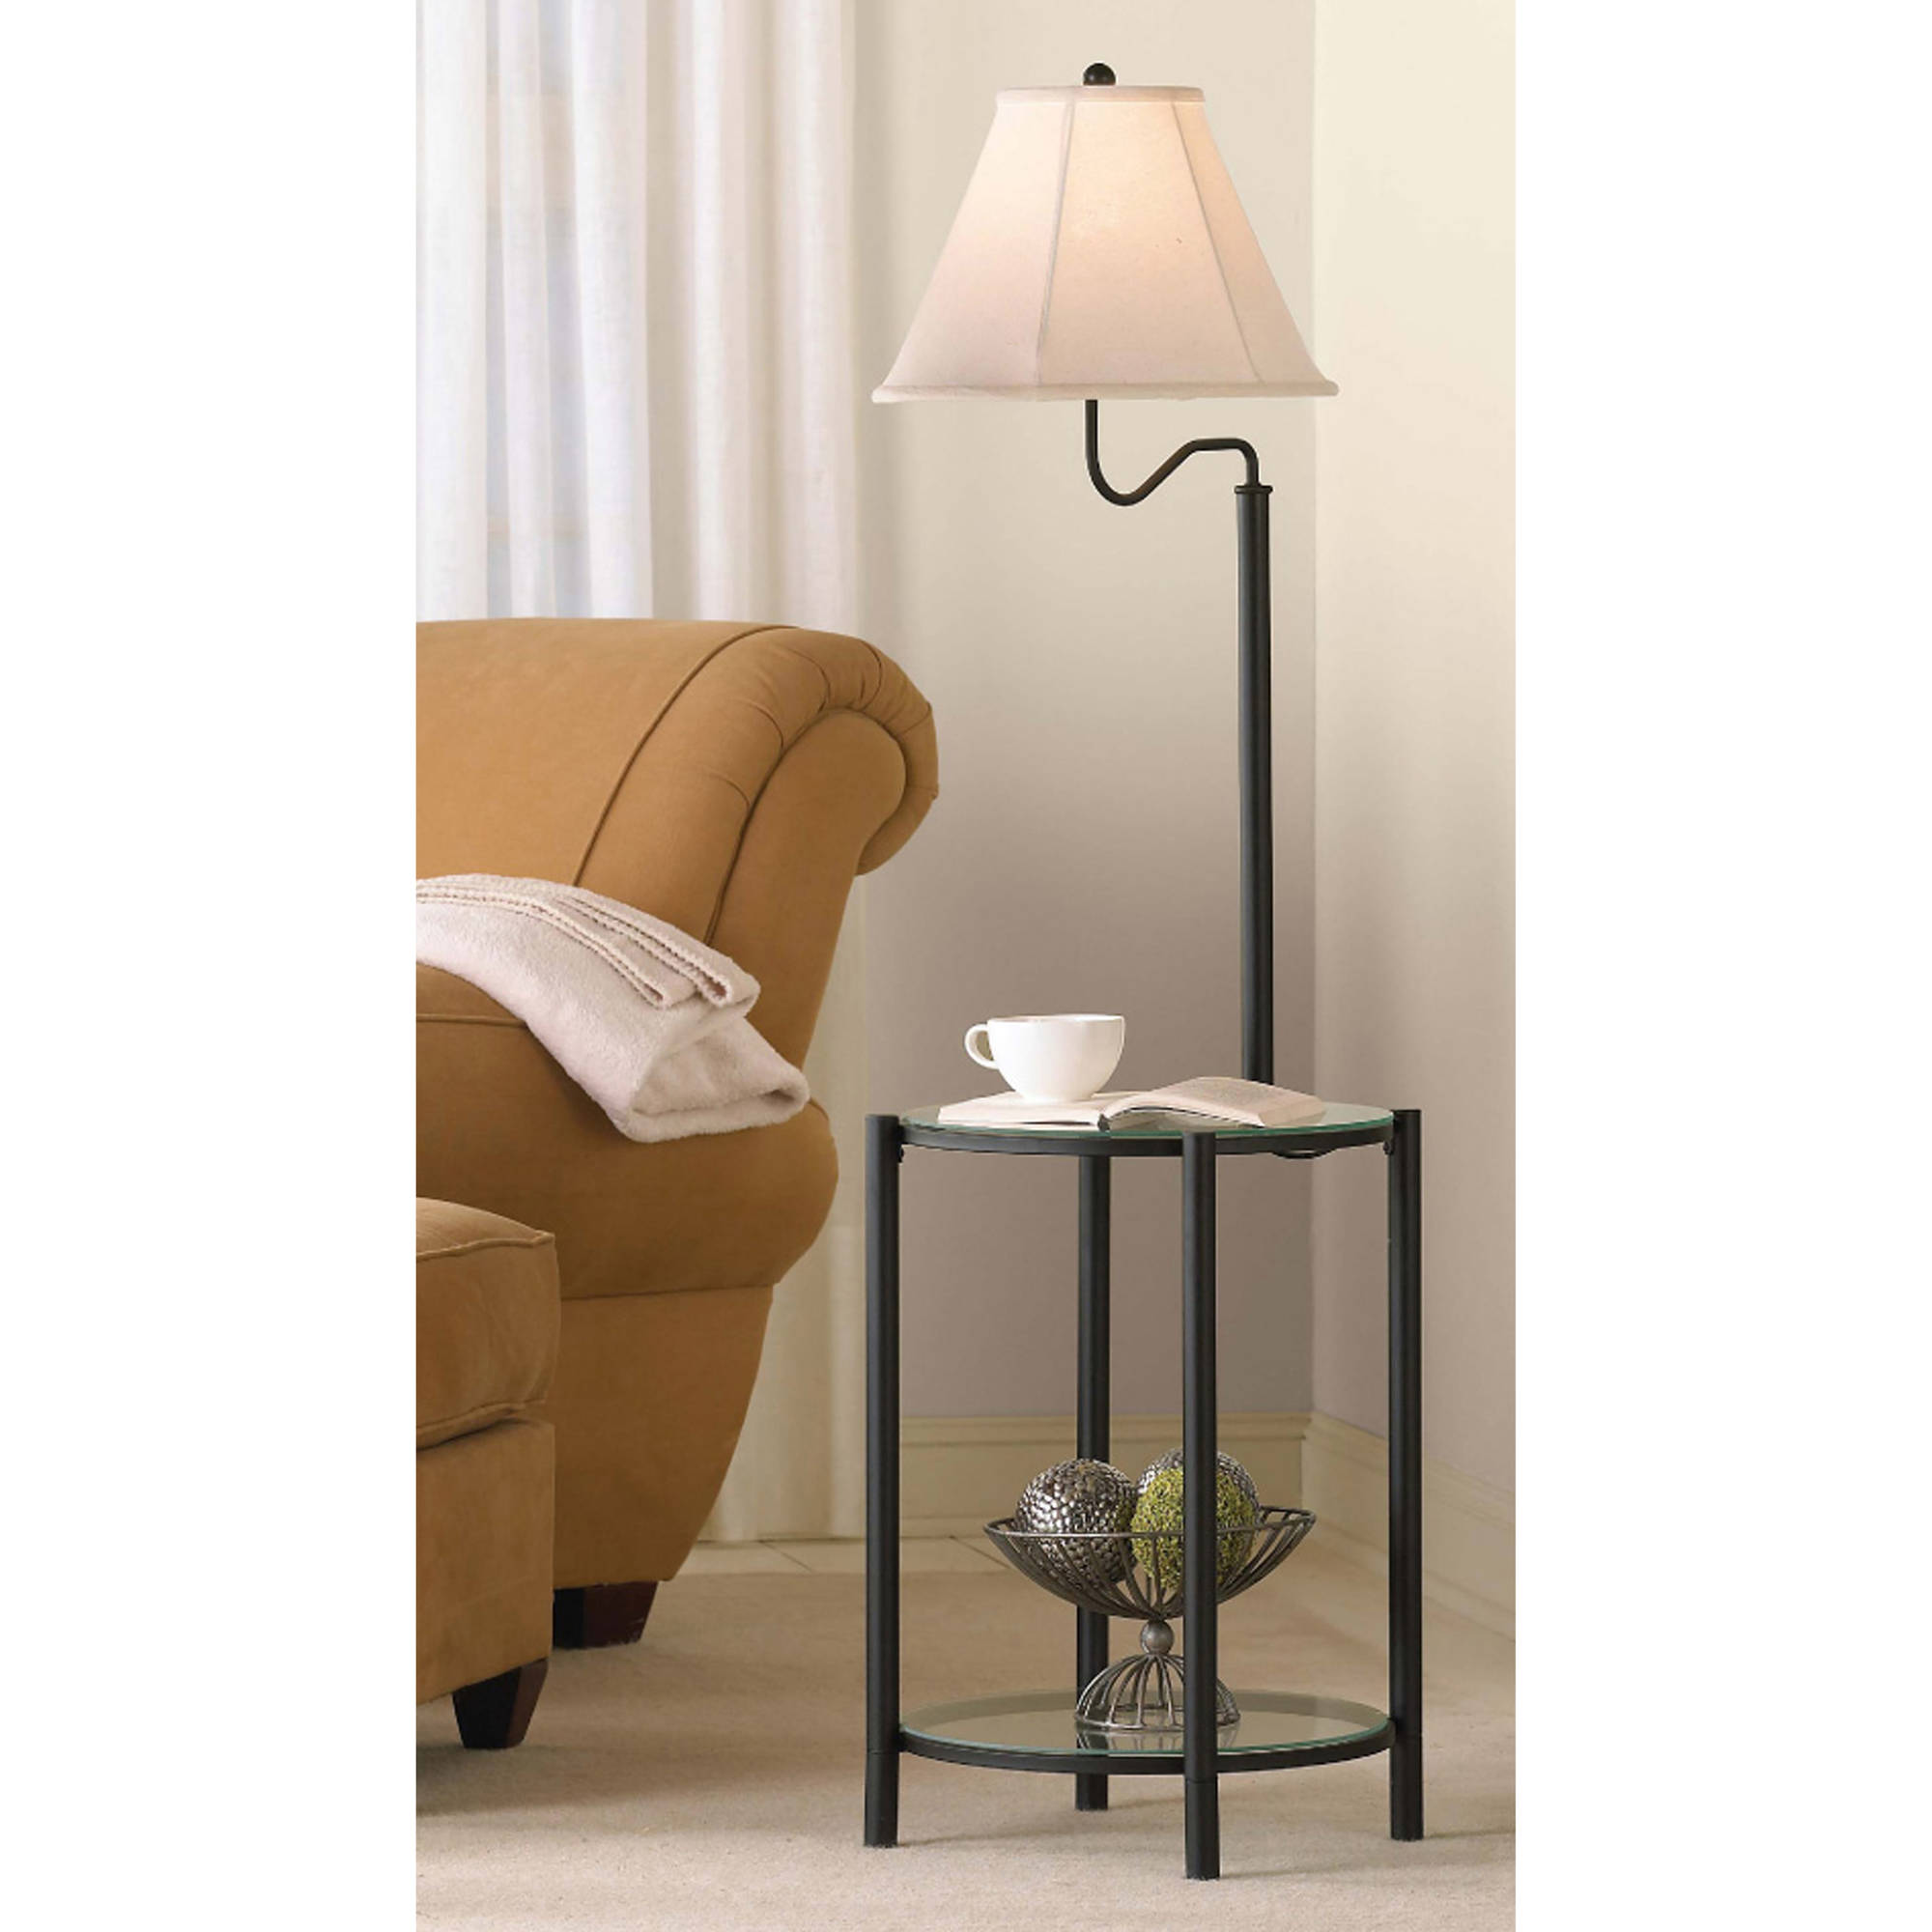 How To Assemble A Mainstays Floor Lamp With Table